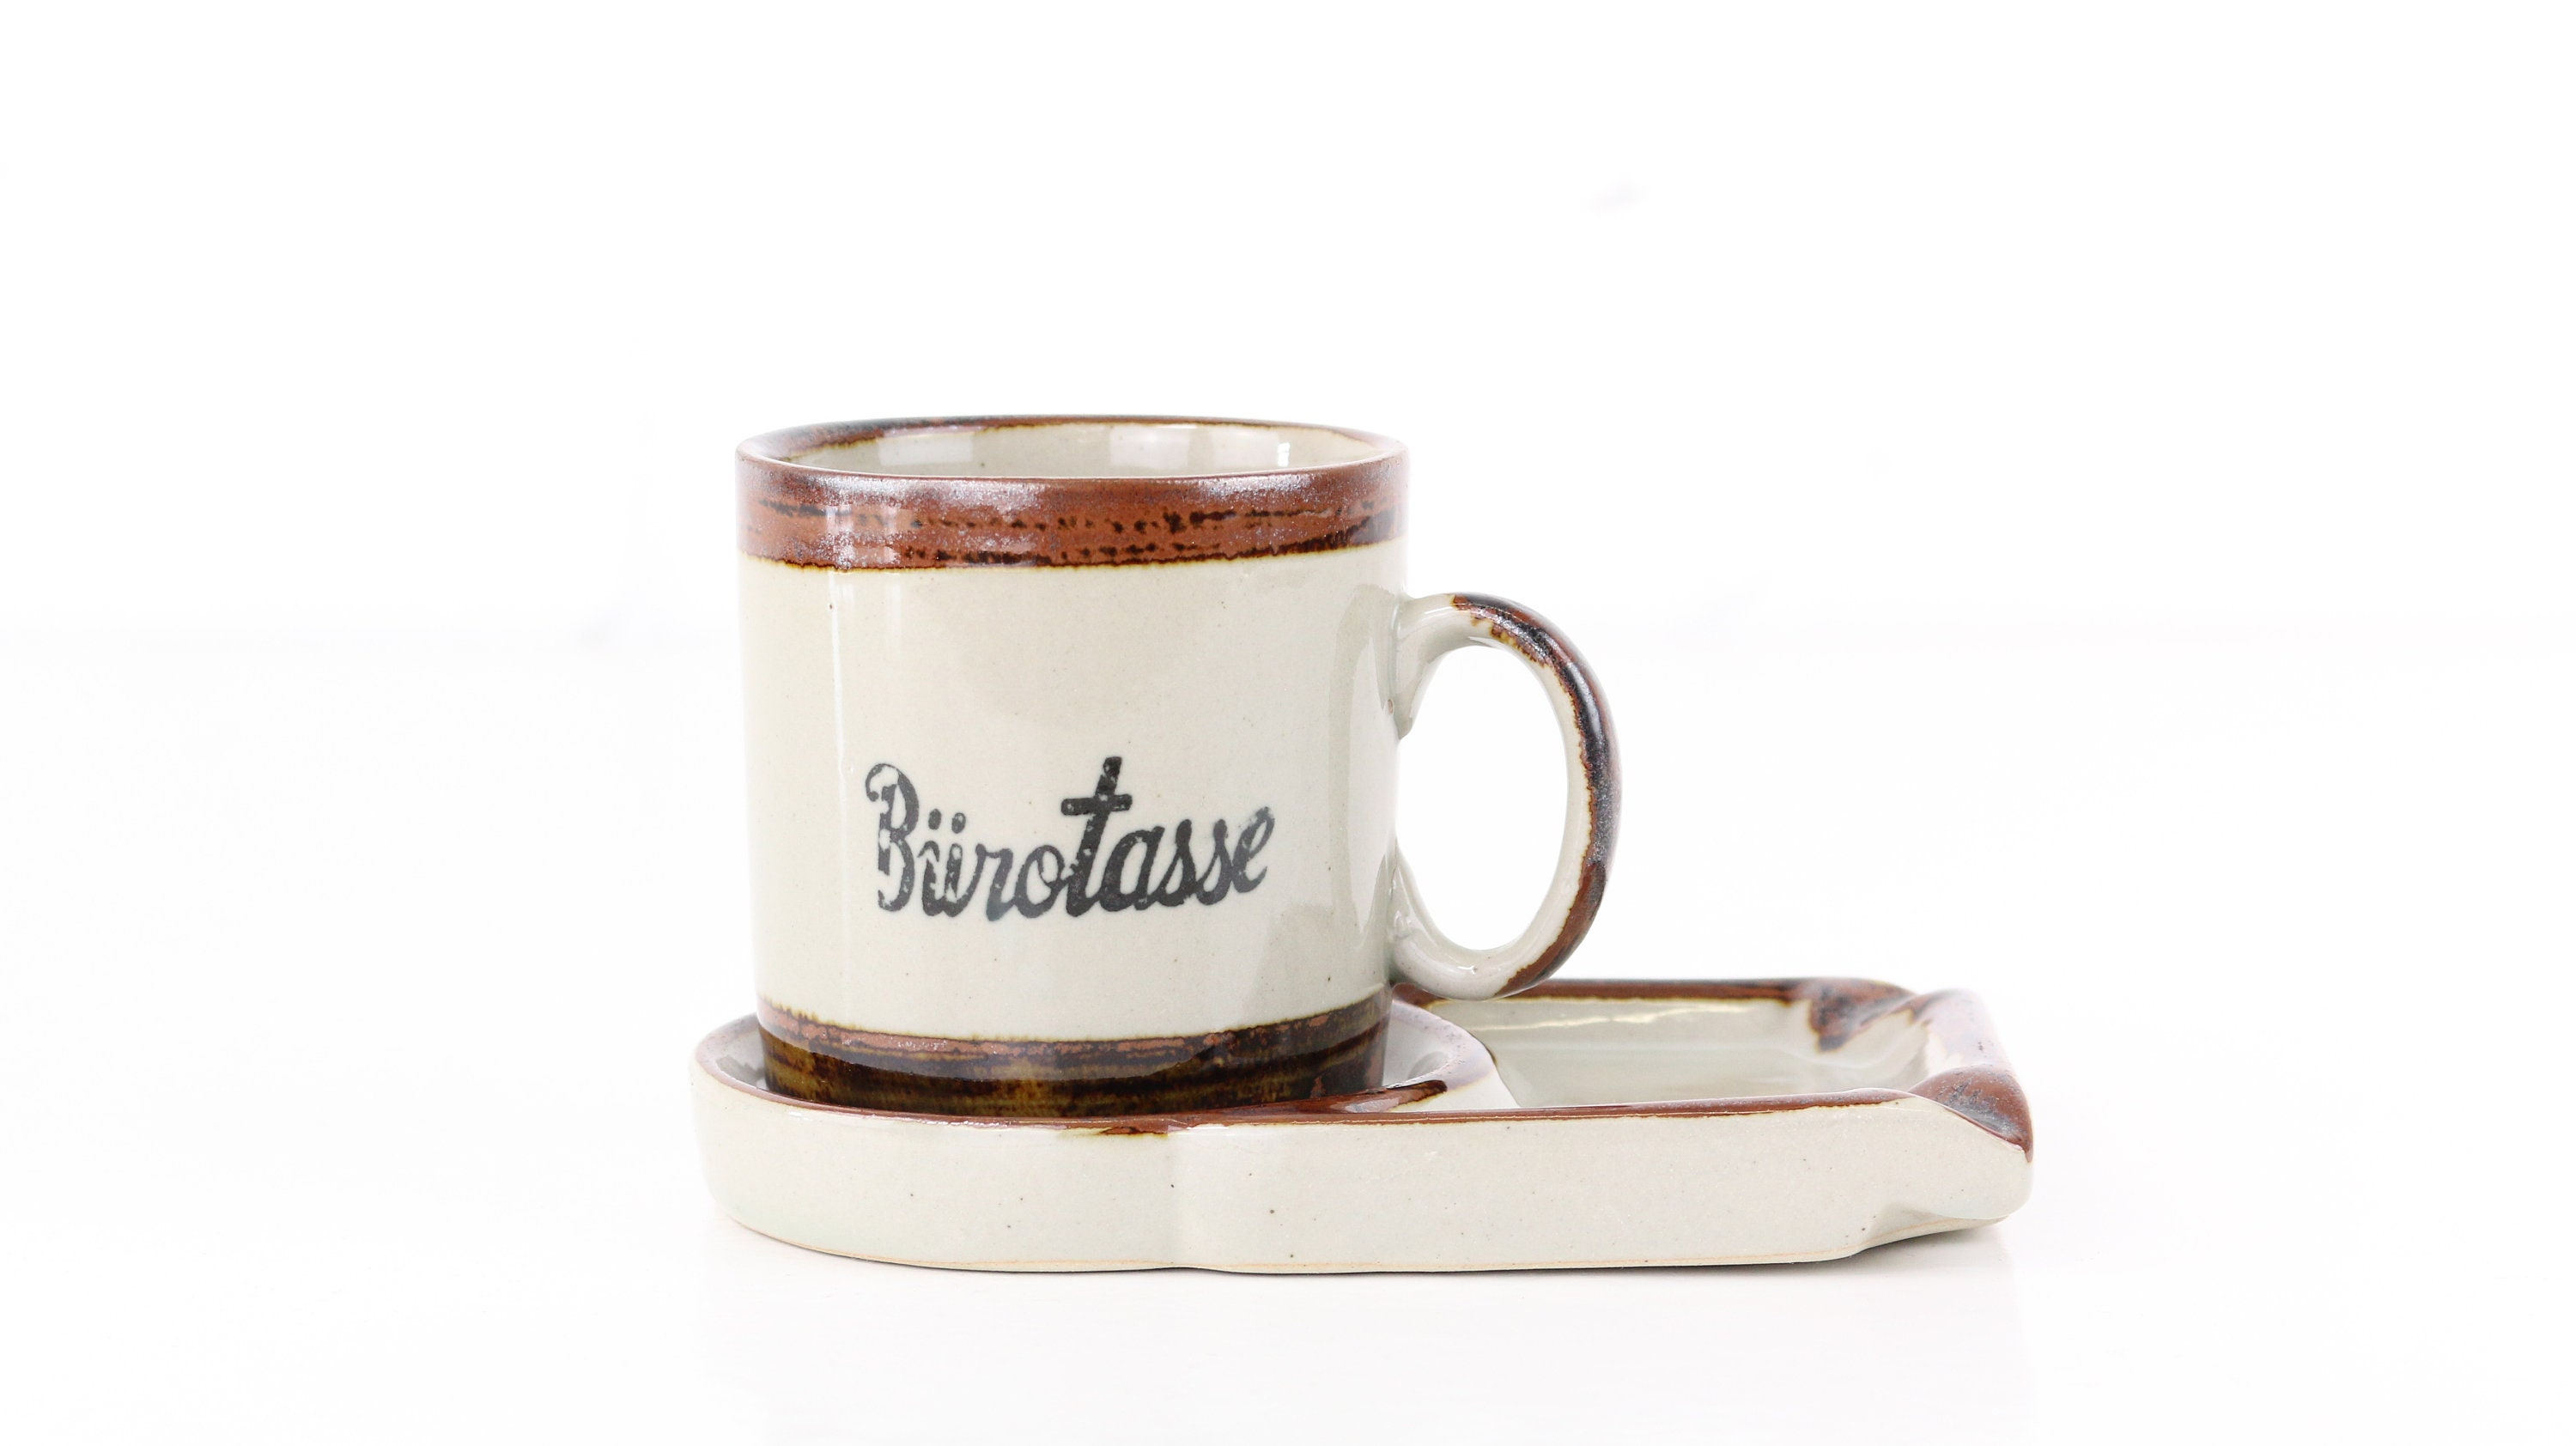 Vintage Earthenware Mug cup & coffee funny gift idea Pottery 2 in 1 ...